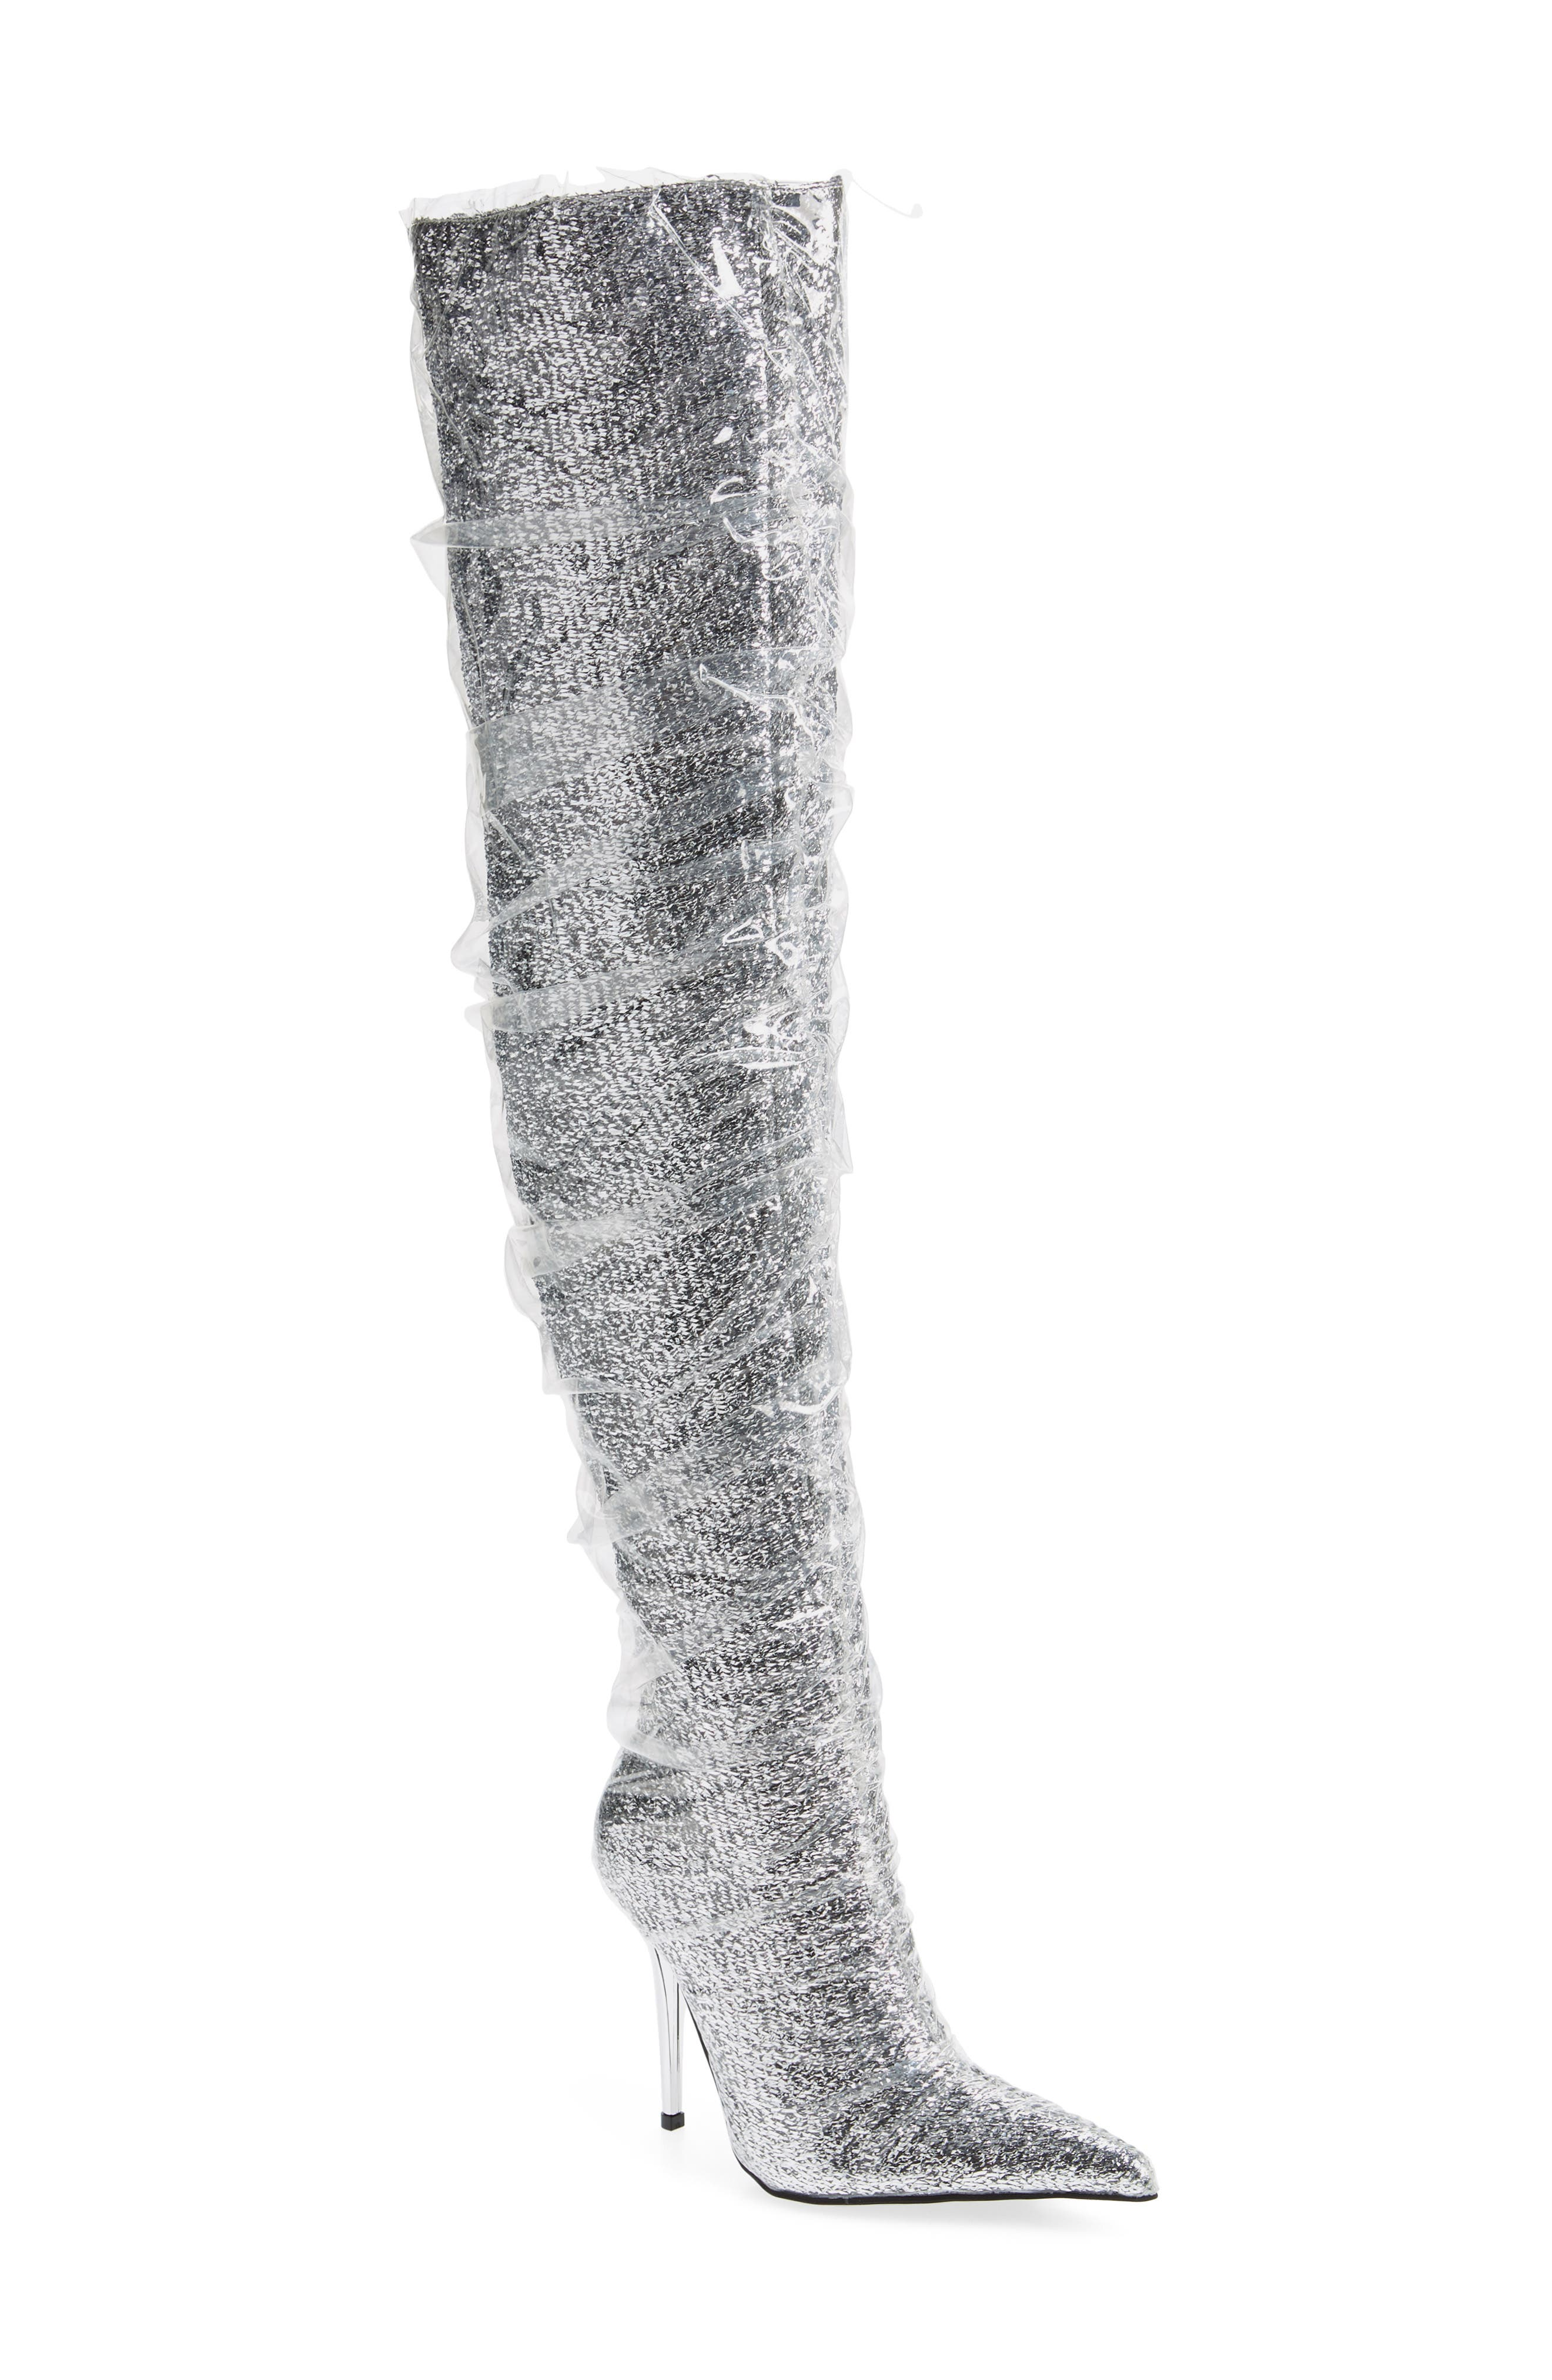 JEFFREY CAMPBELL Gamora Thigh High Boot in Silver/ Clear Fabric